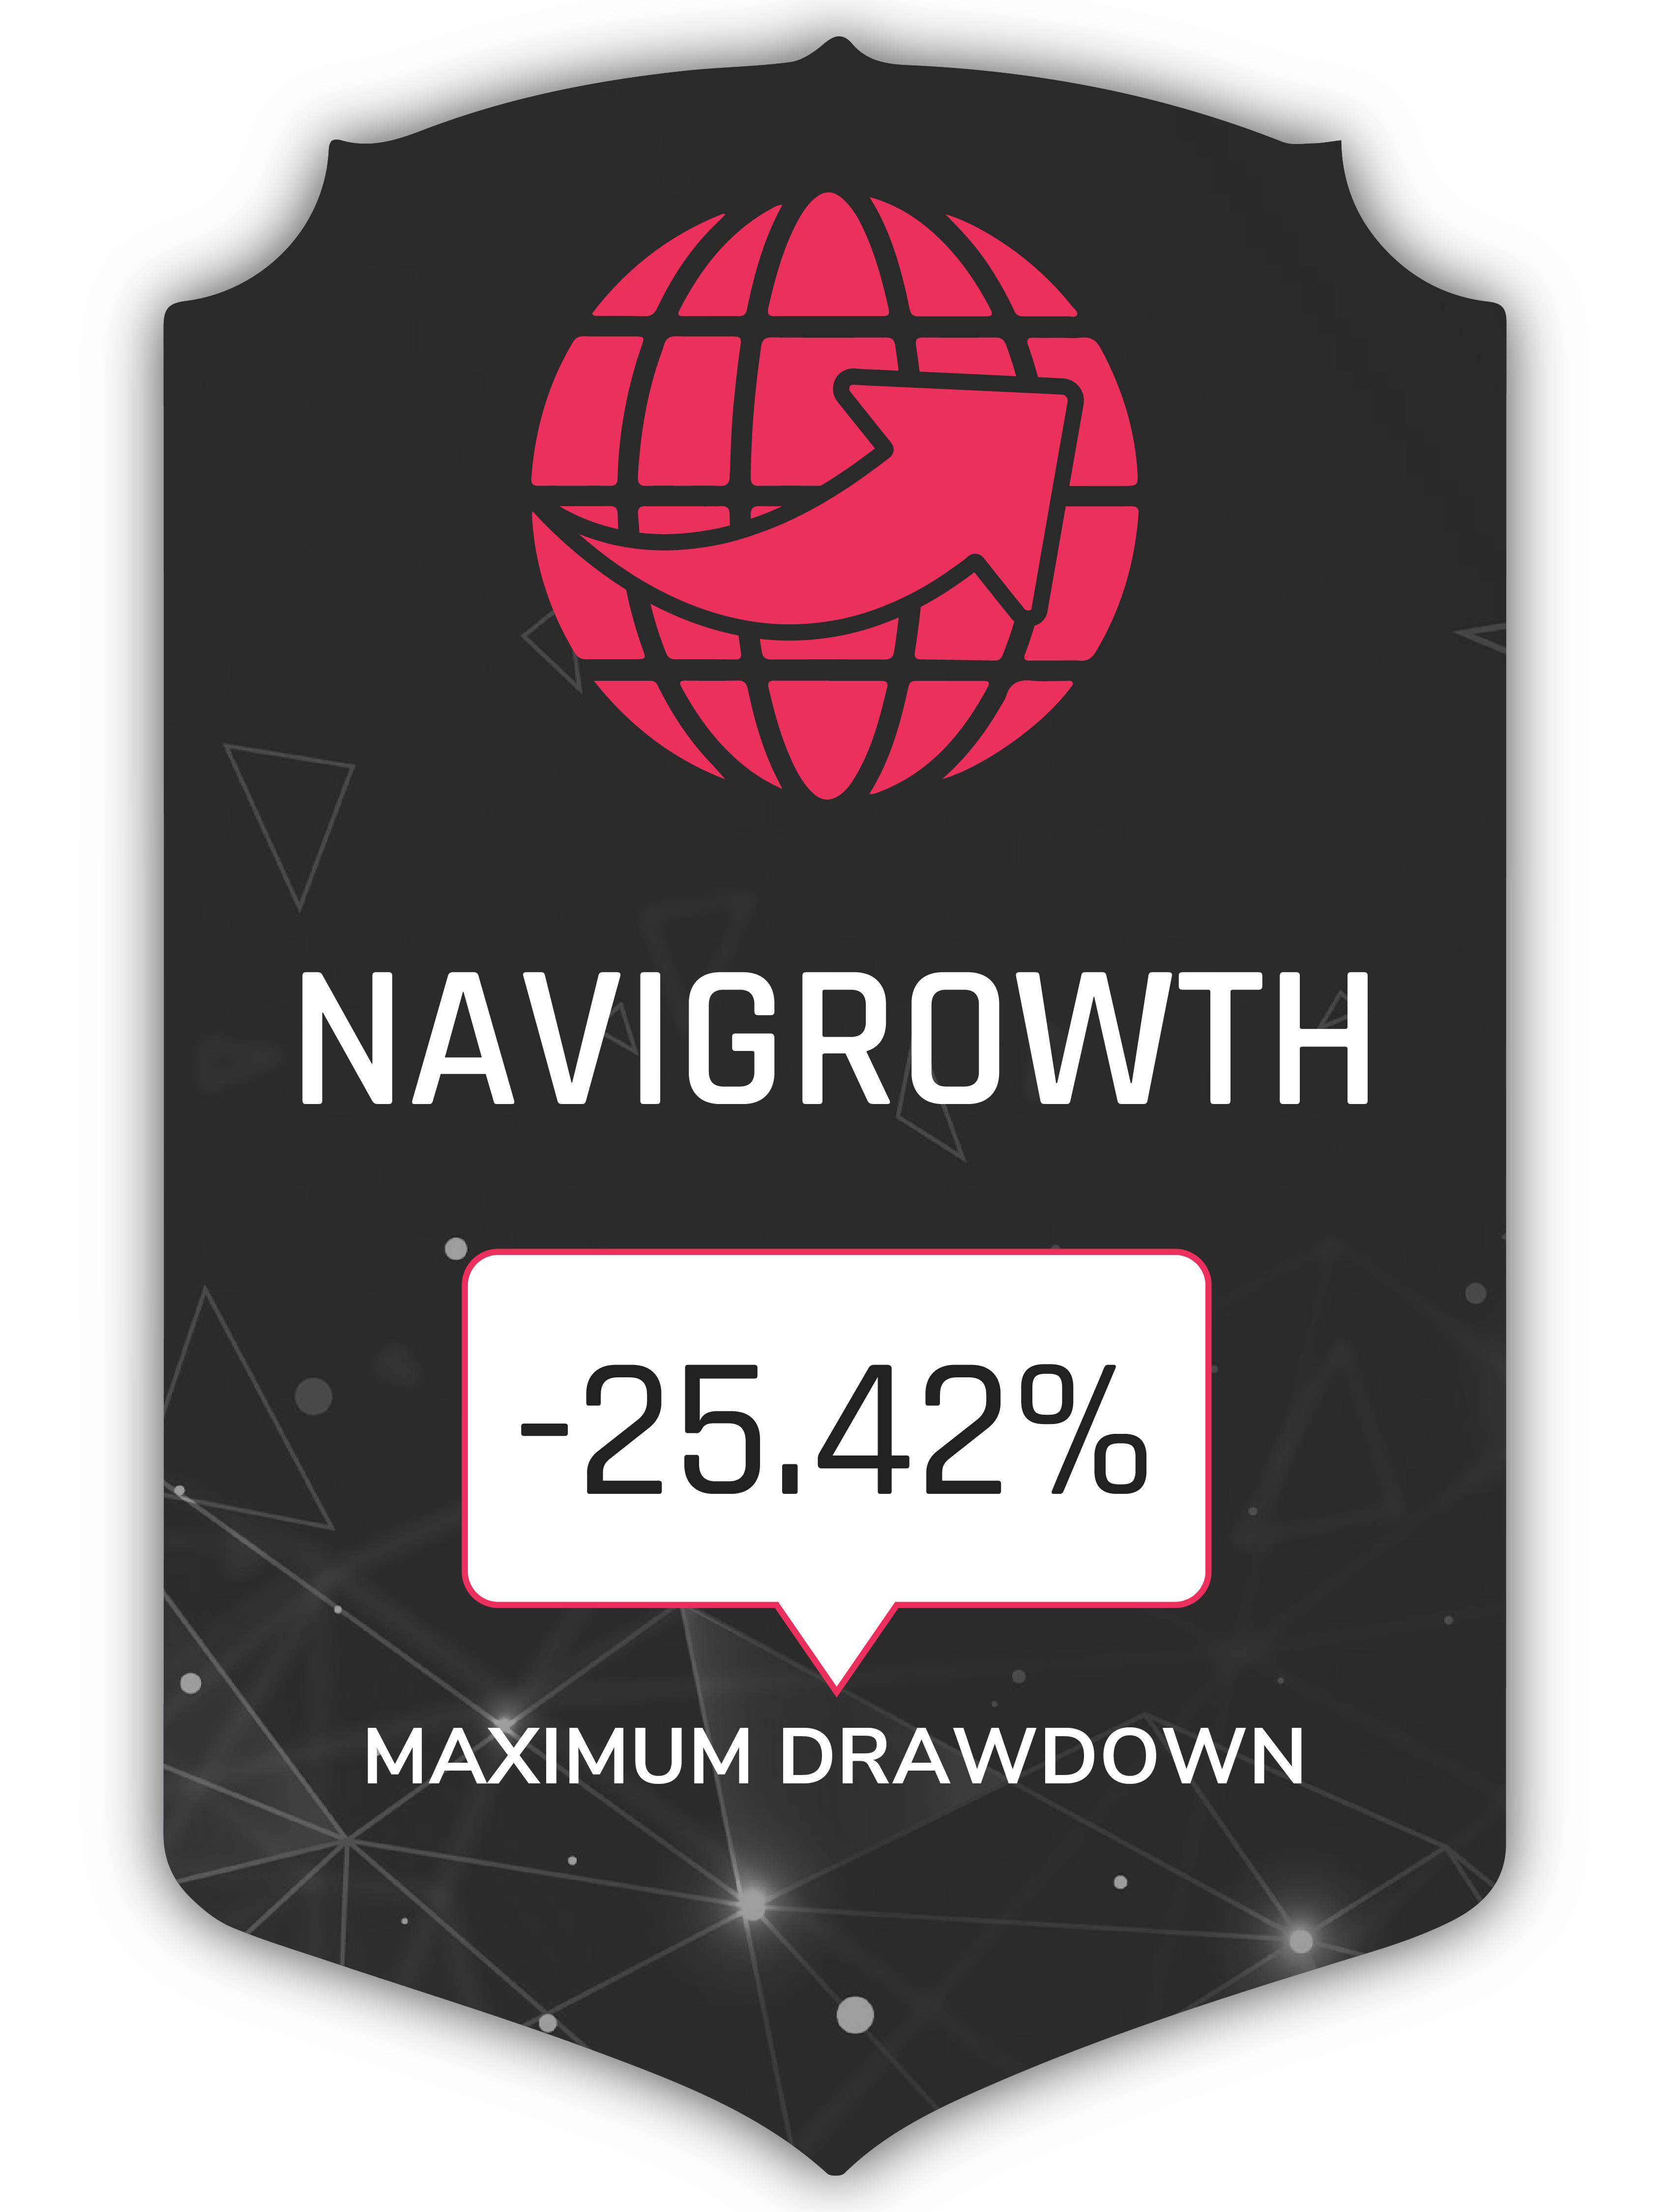 The badge of our Navigrowth strategy